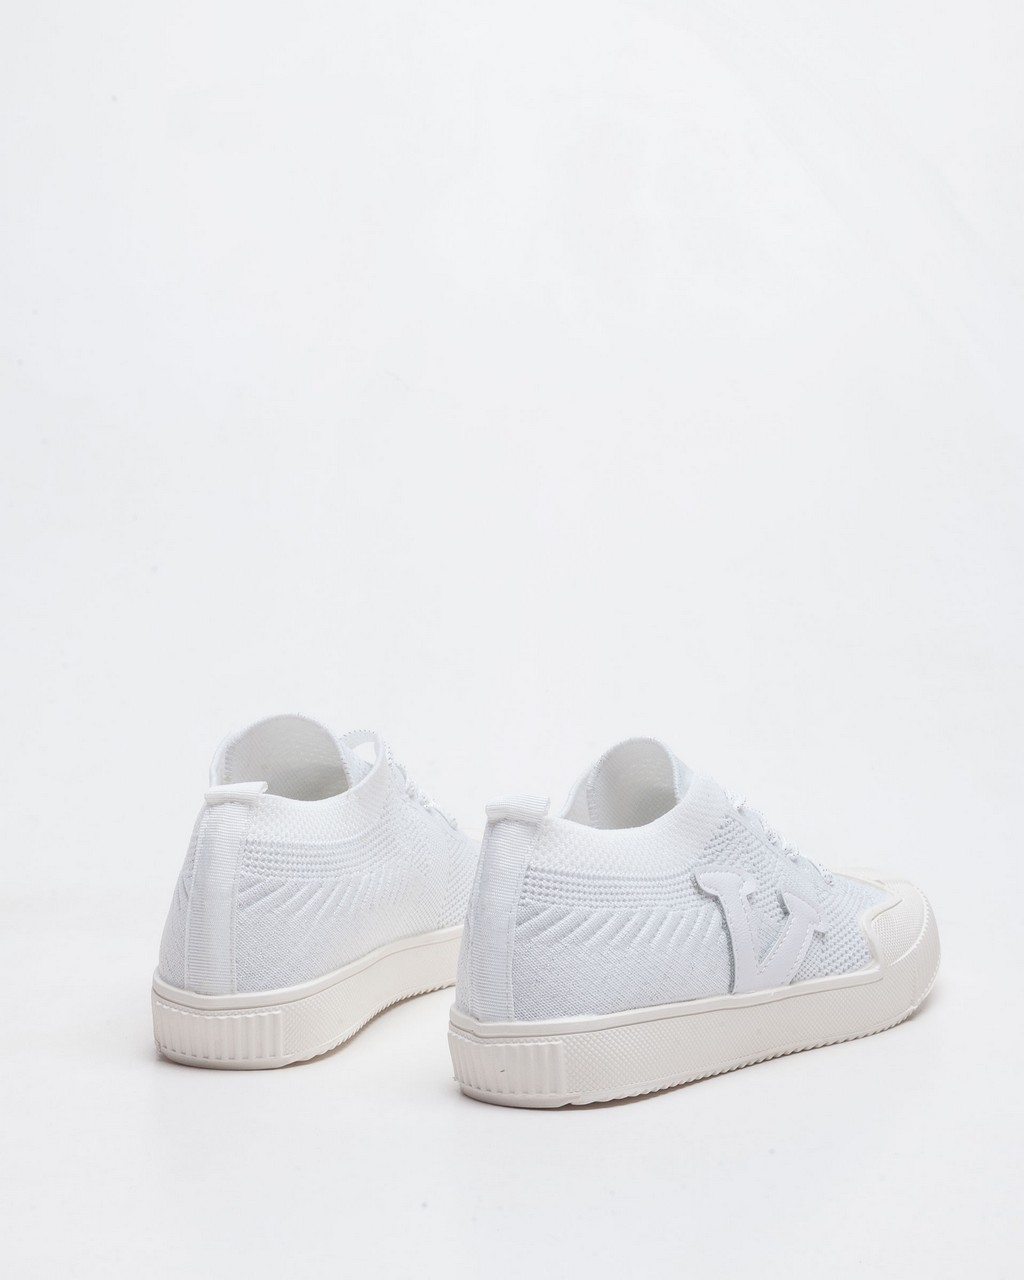 Tagtraume Queens-04 - White(화이트)